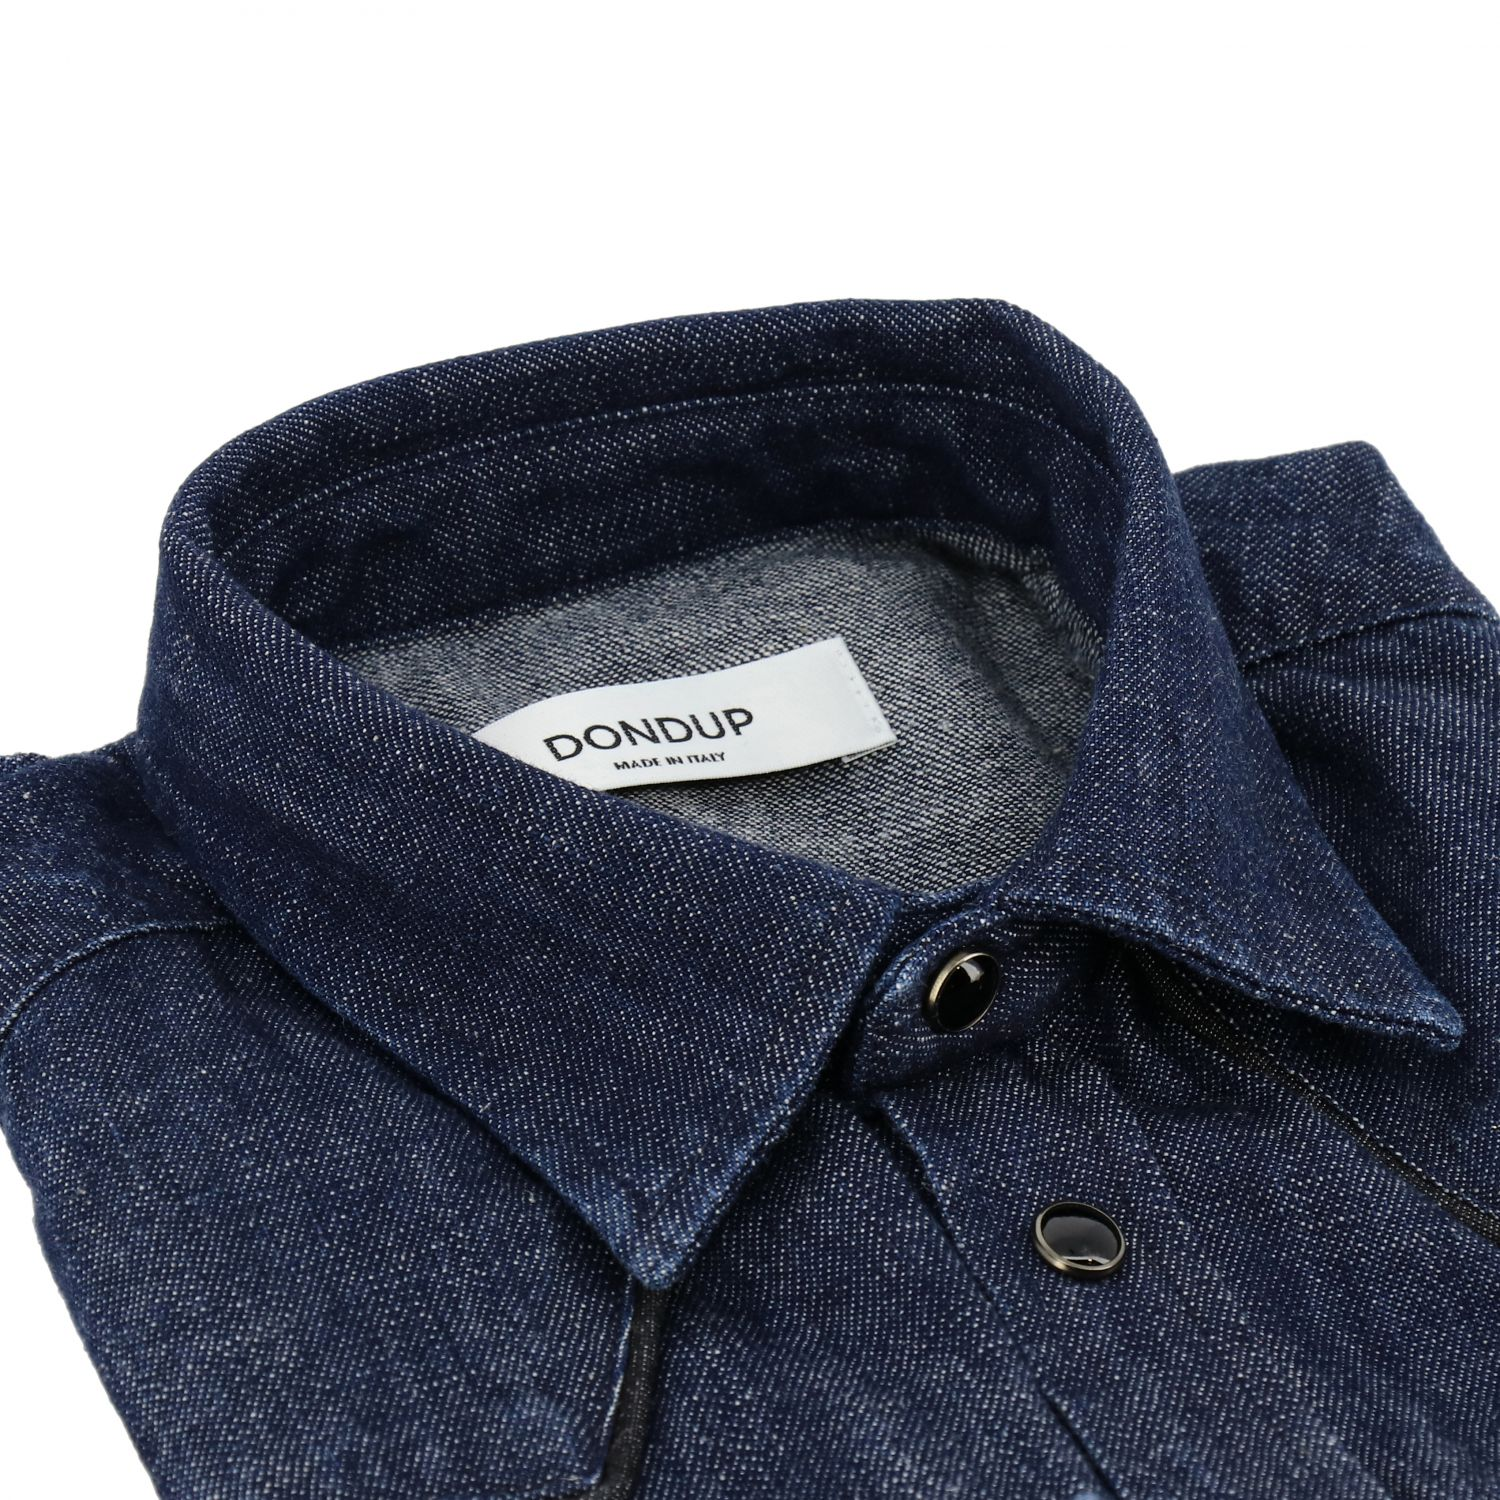 Shirt kids Dondup denim 2